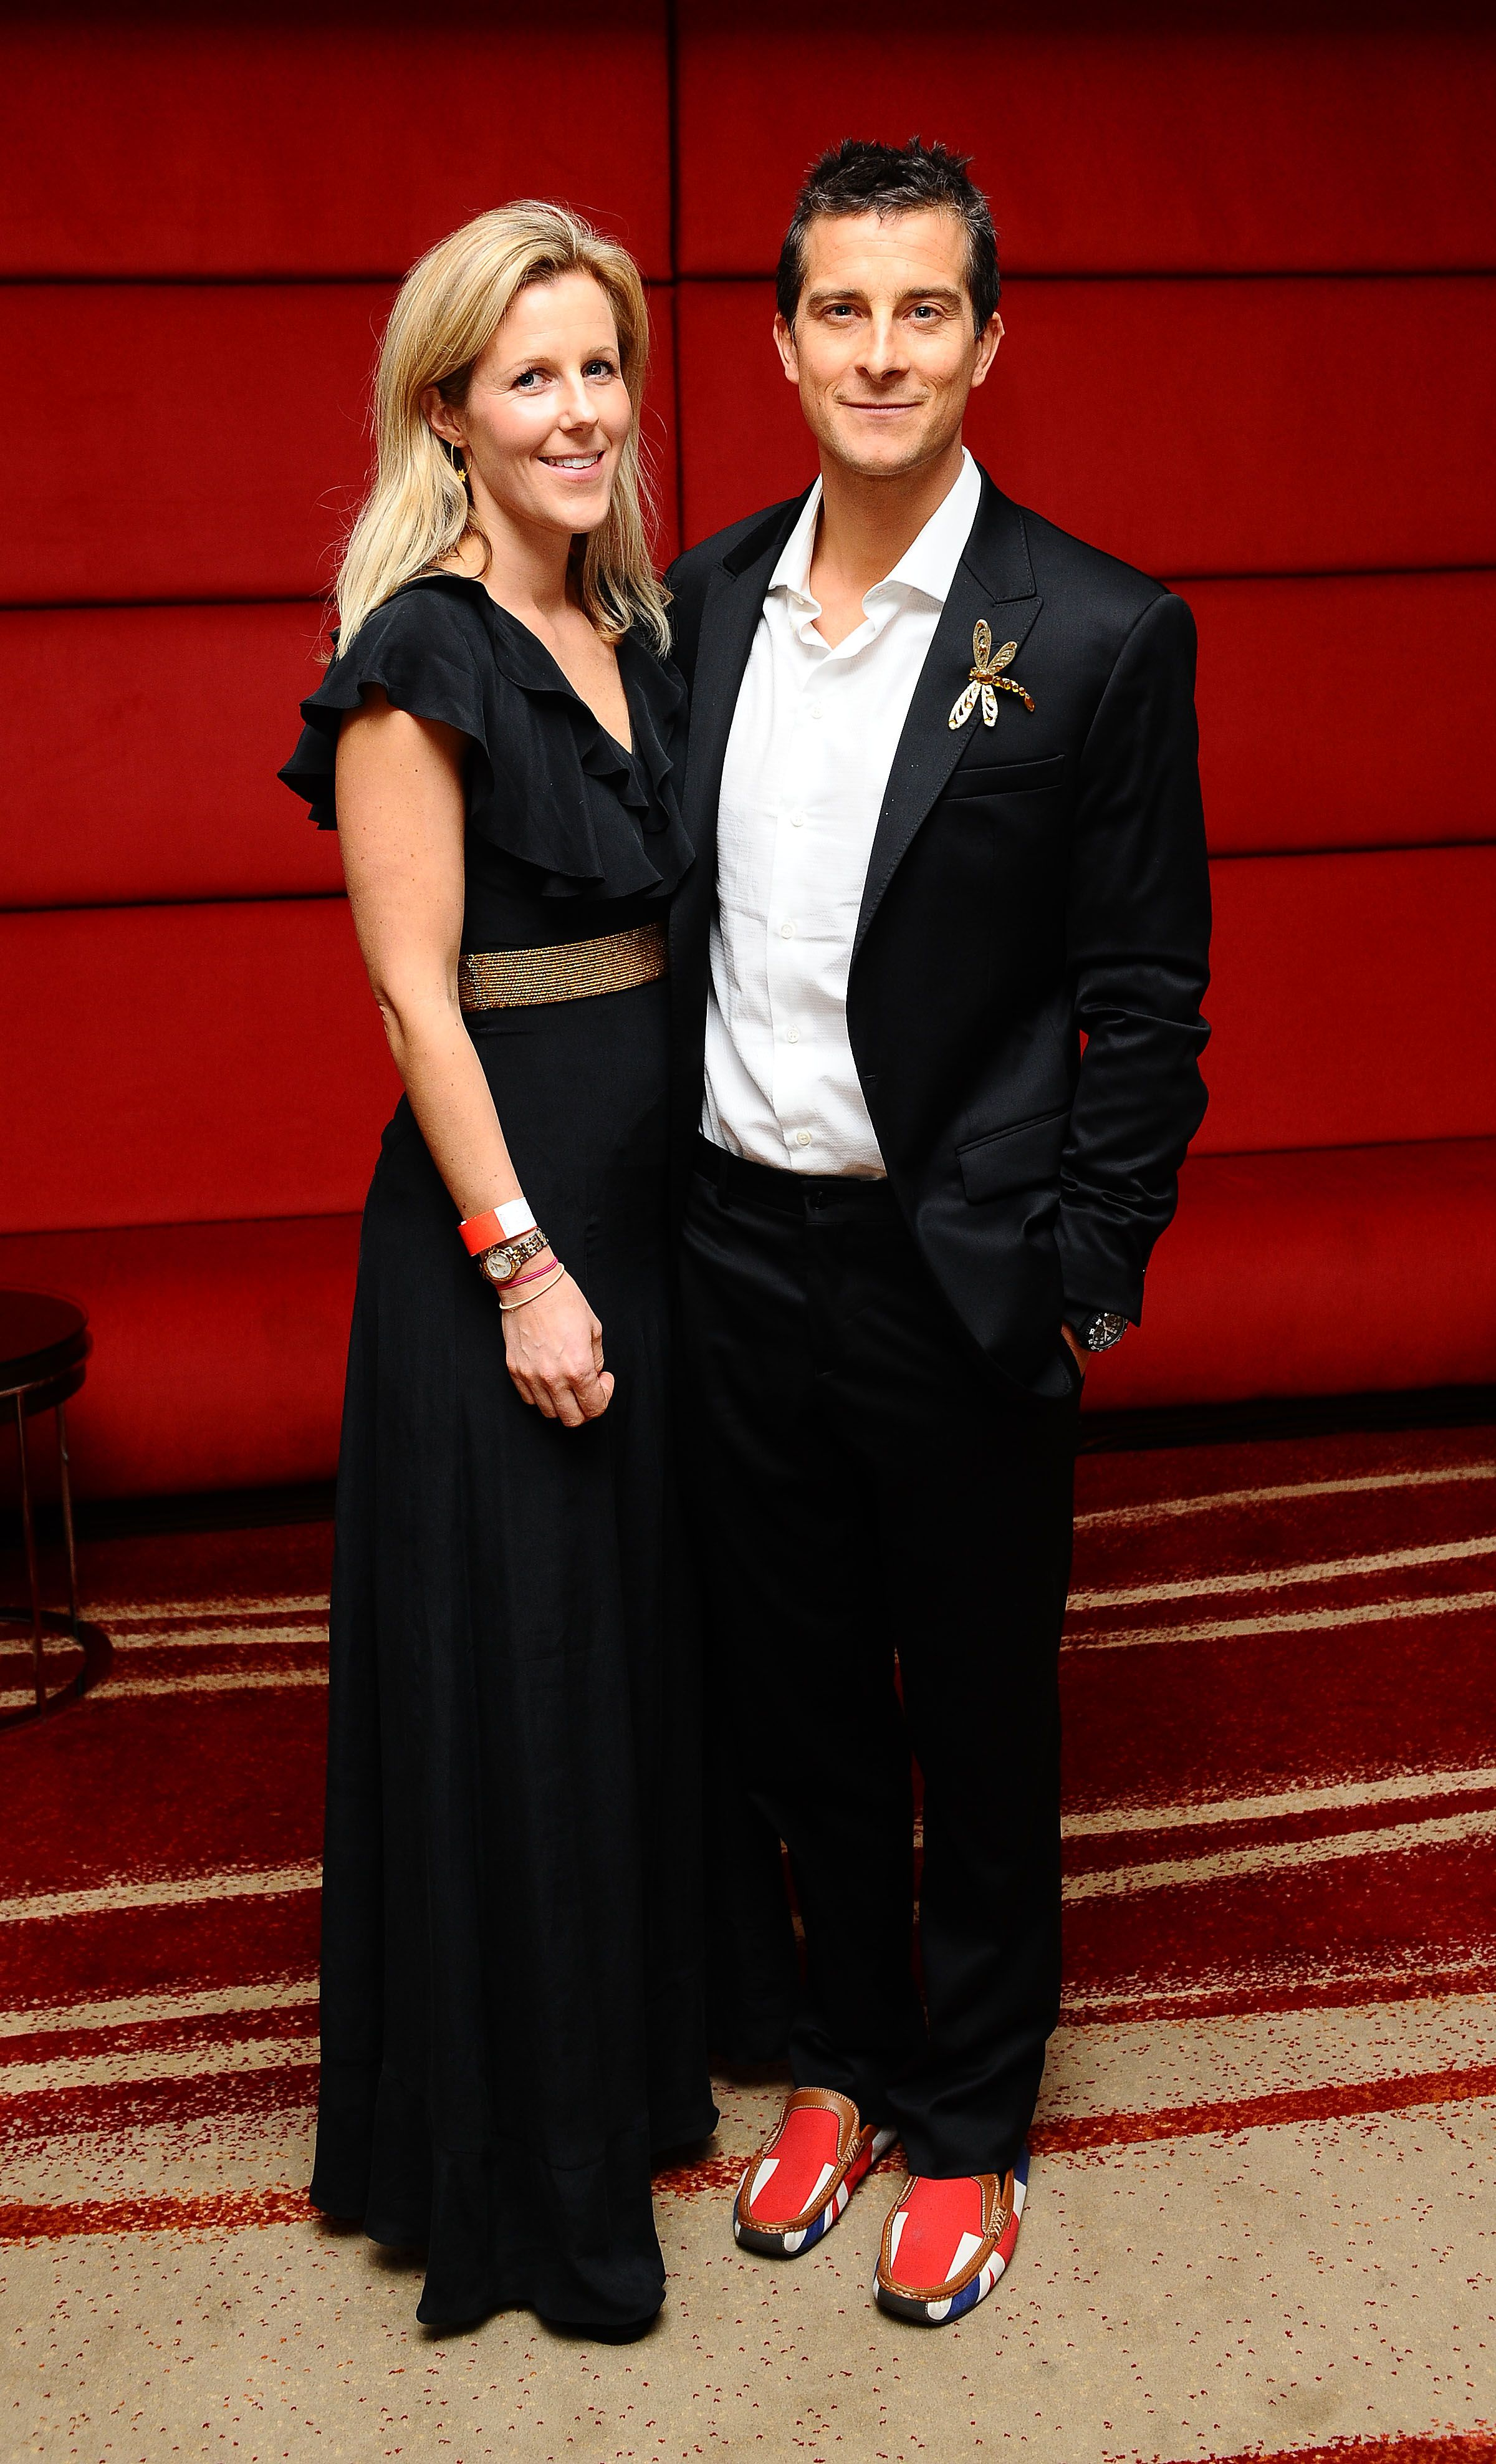 Bear Grylls and wife Shara at the Global Angel Awards in London | Source: Getty Images